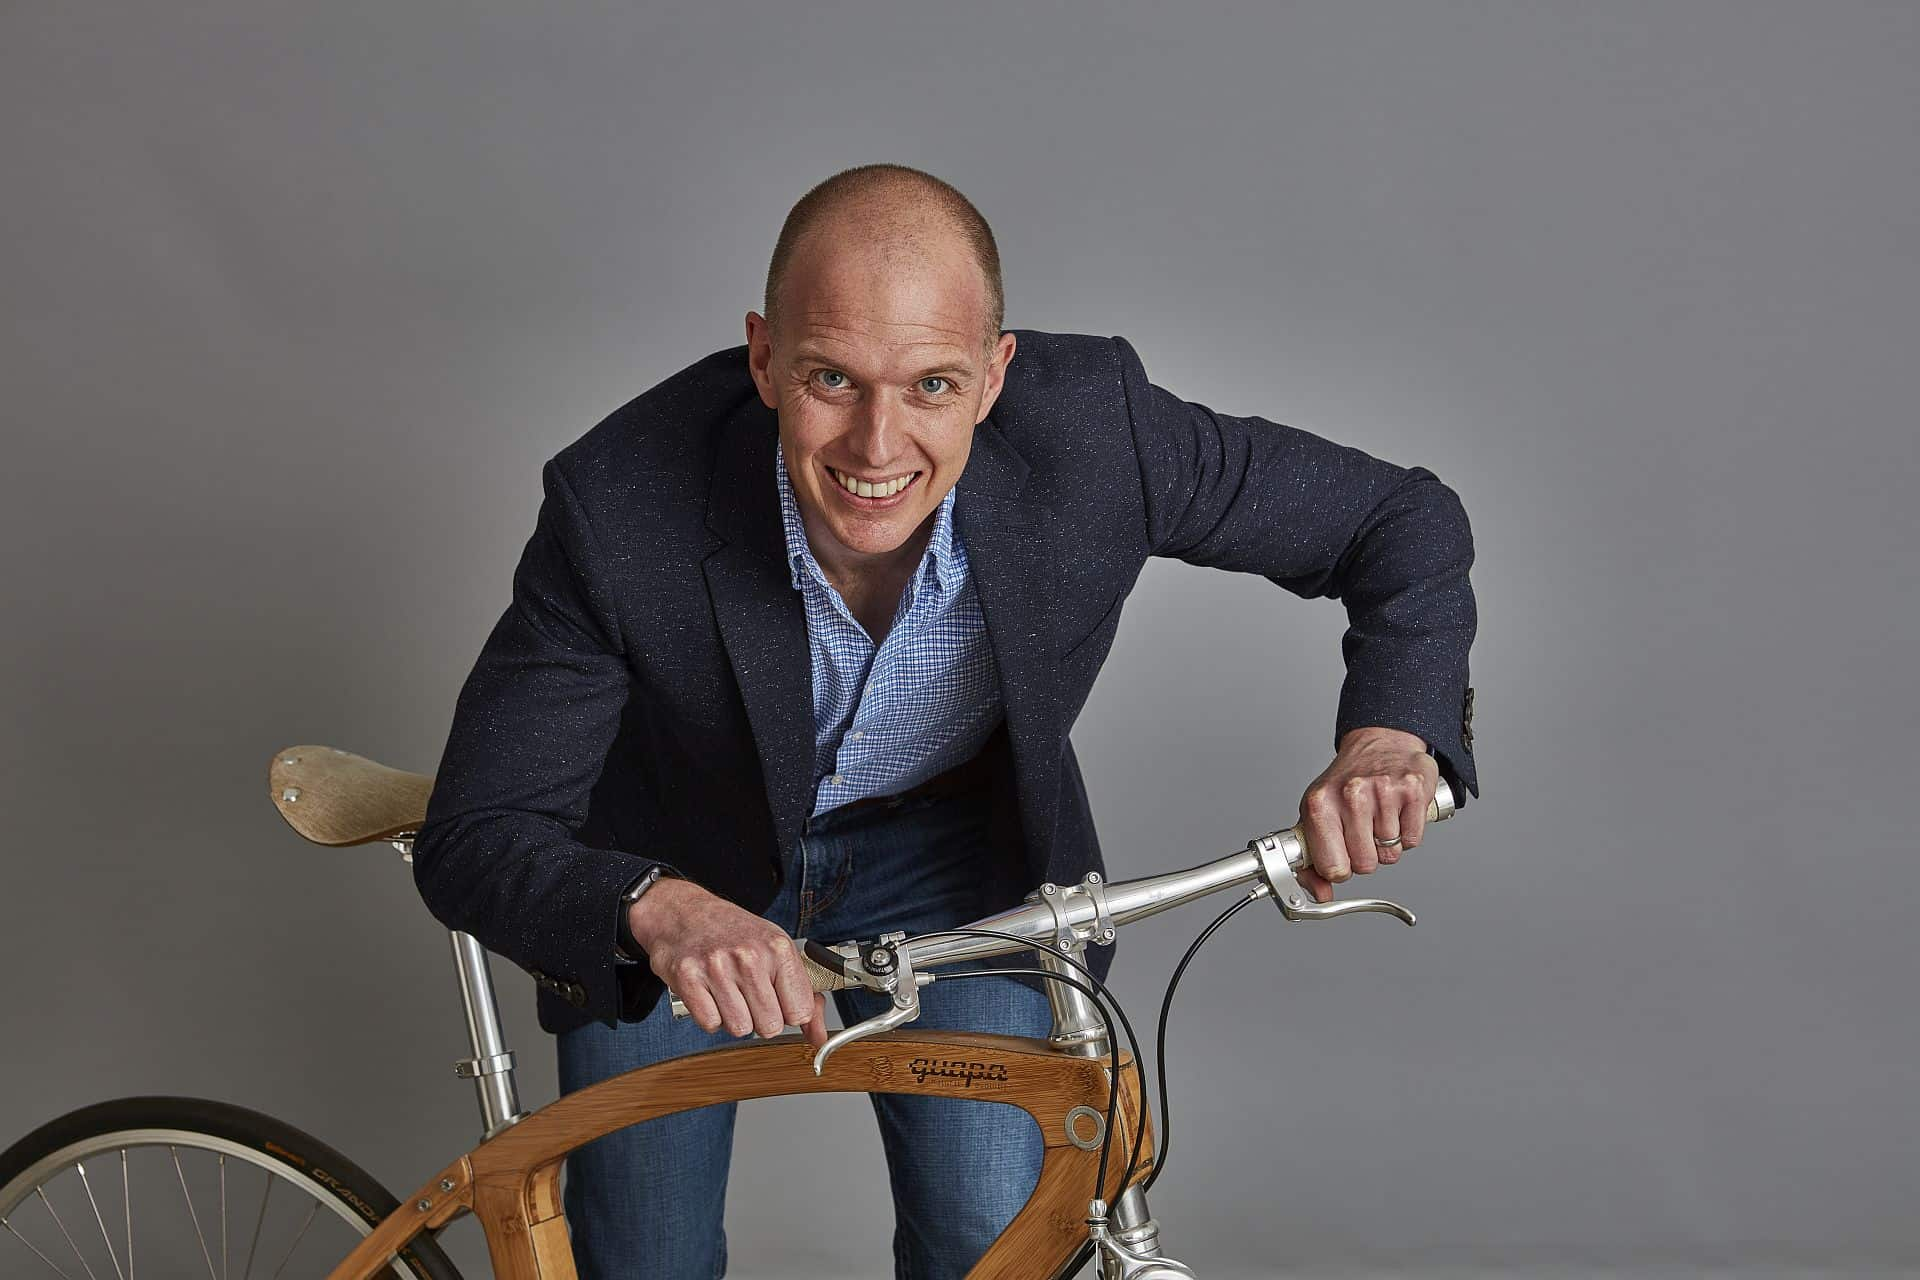 Simon Brown, IoD Young Director of the Year posing with bike